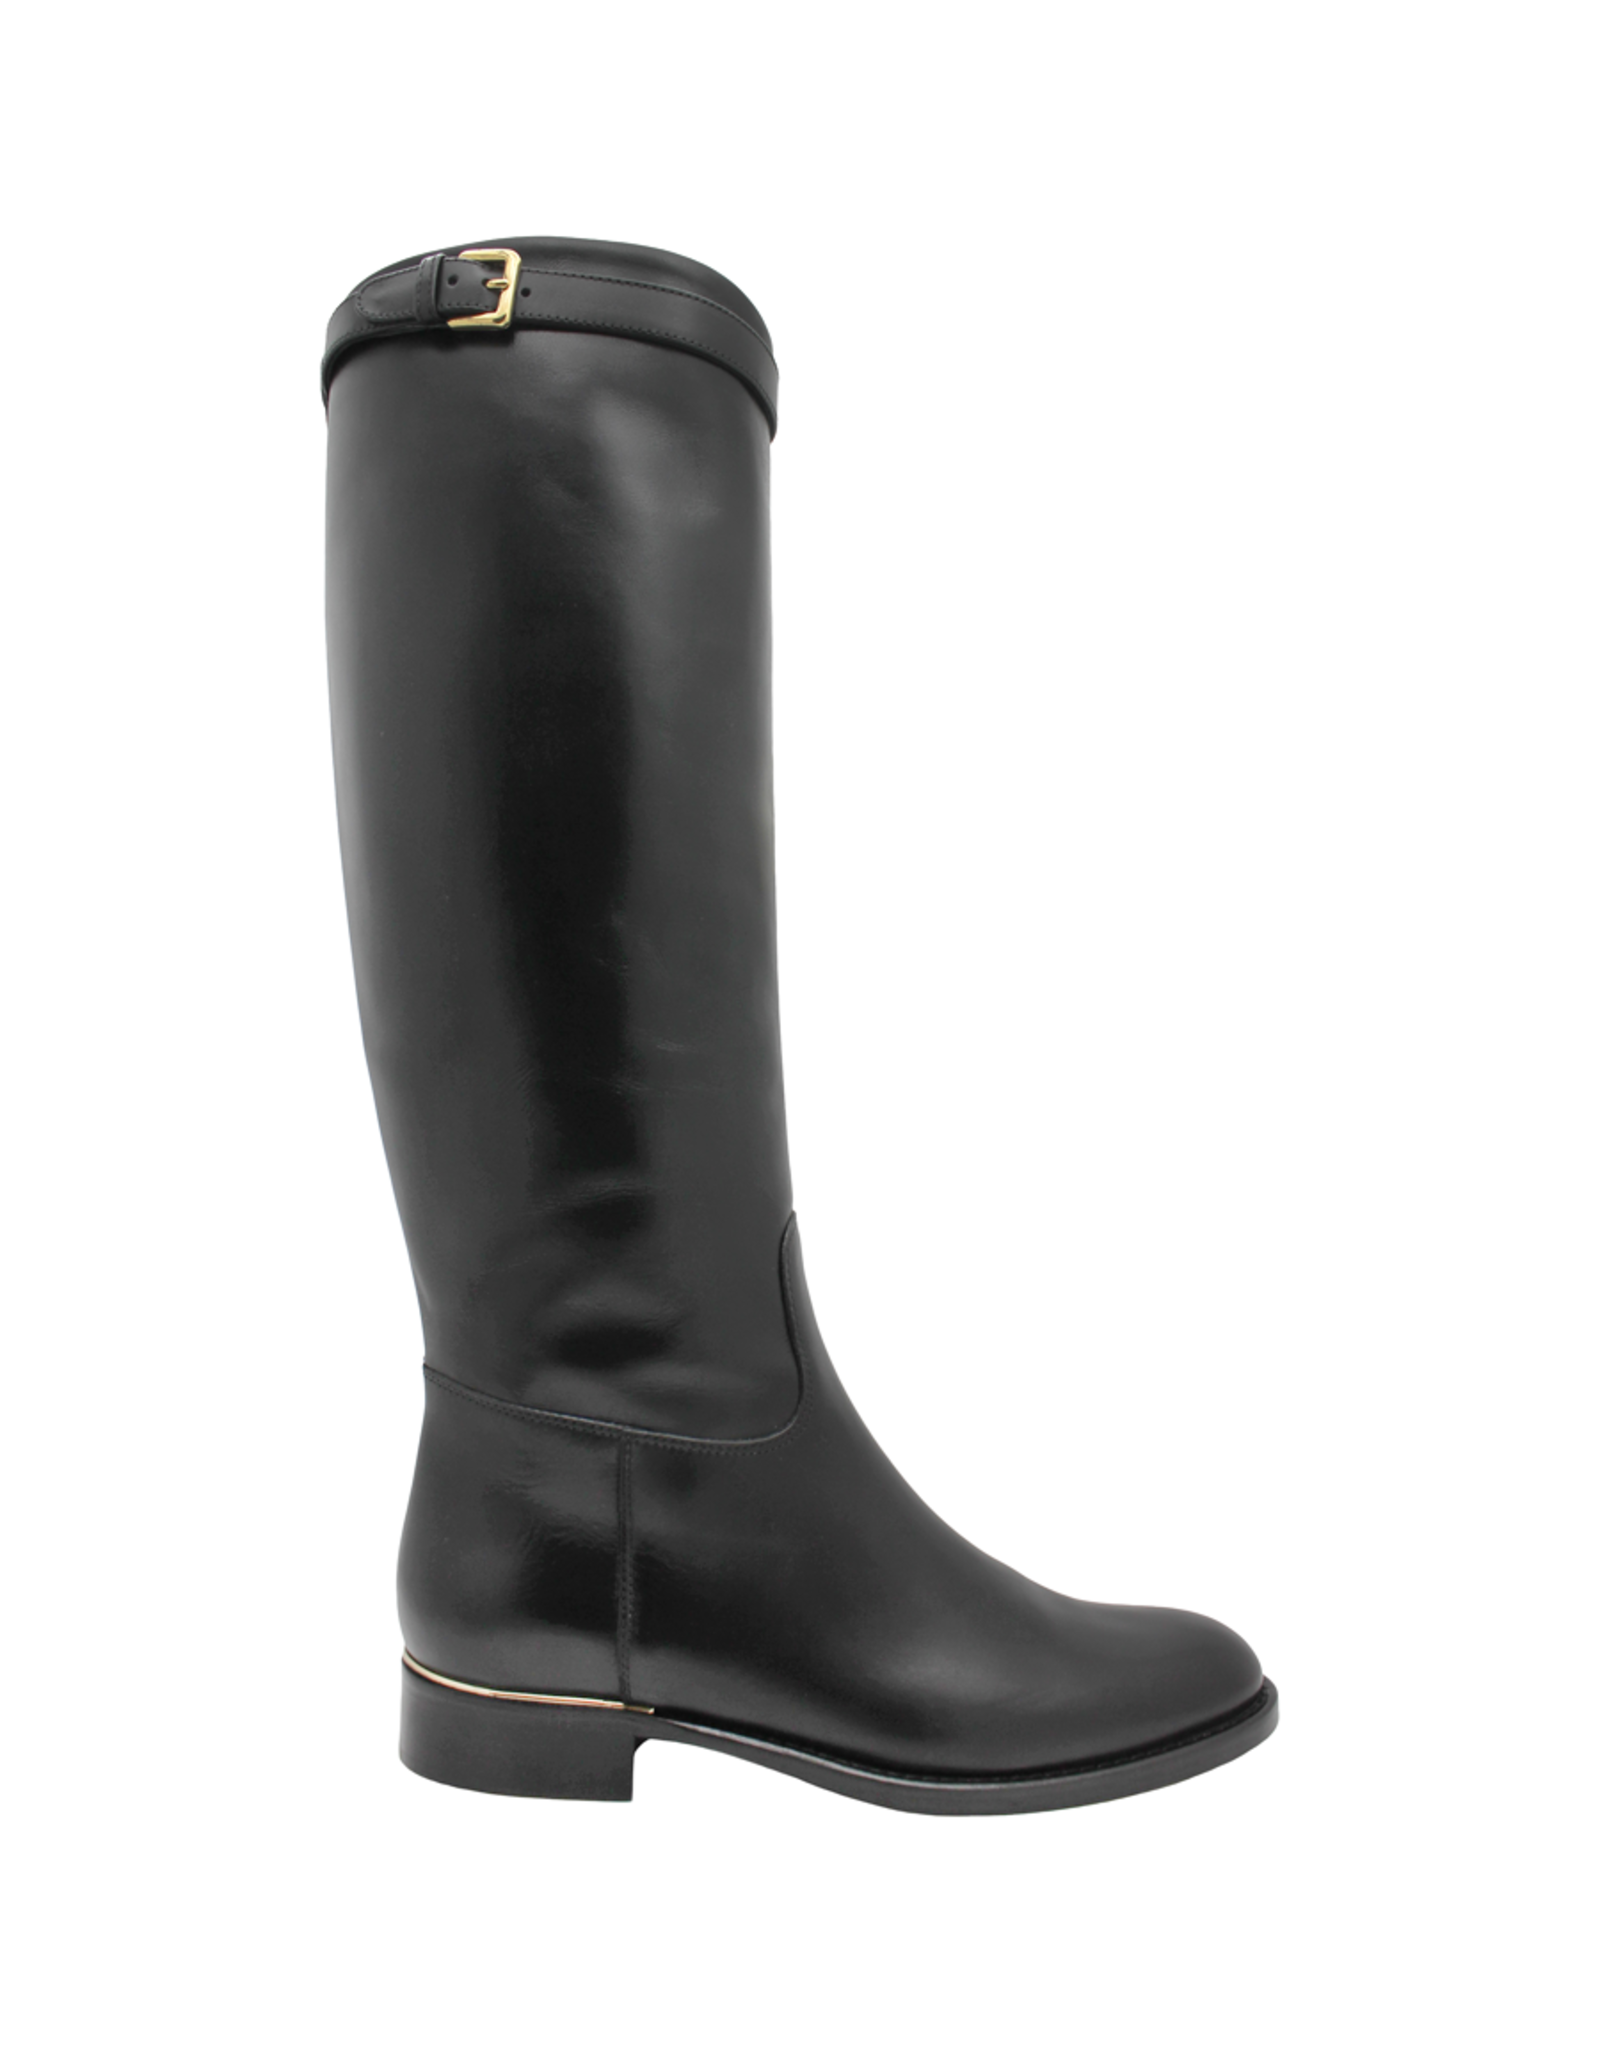 Eclat Eclat Black Calf Riding Boot With Buckle Detail+Side Zipper 1000